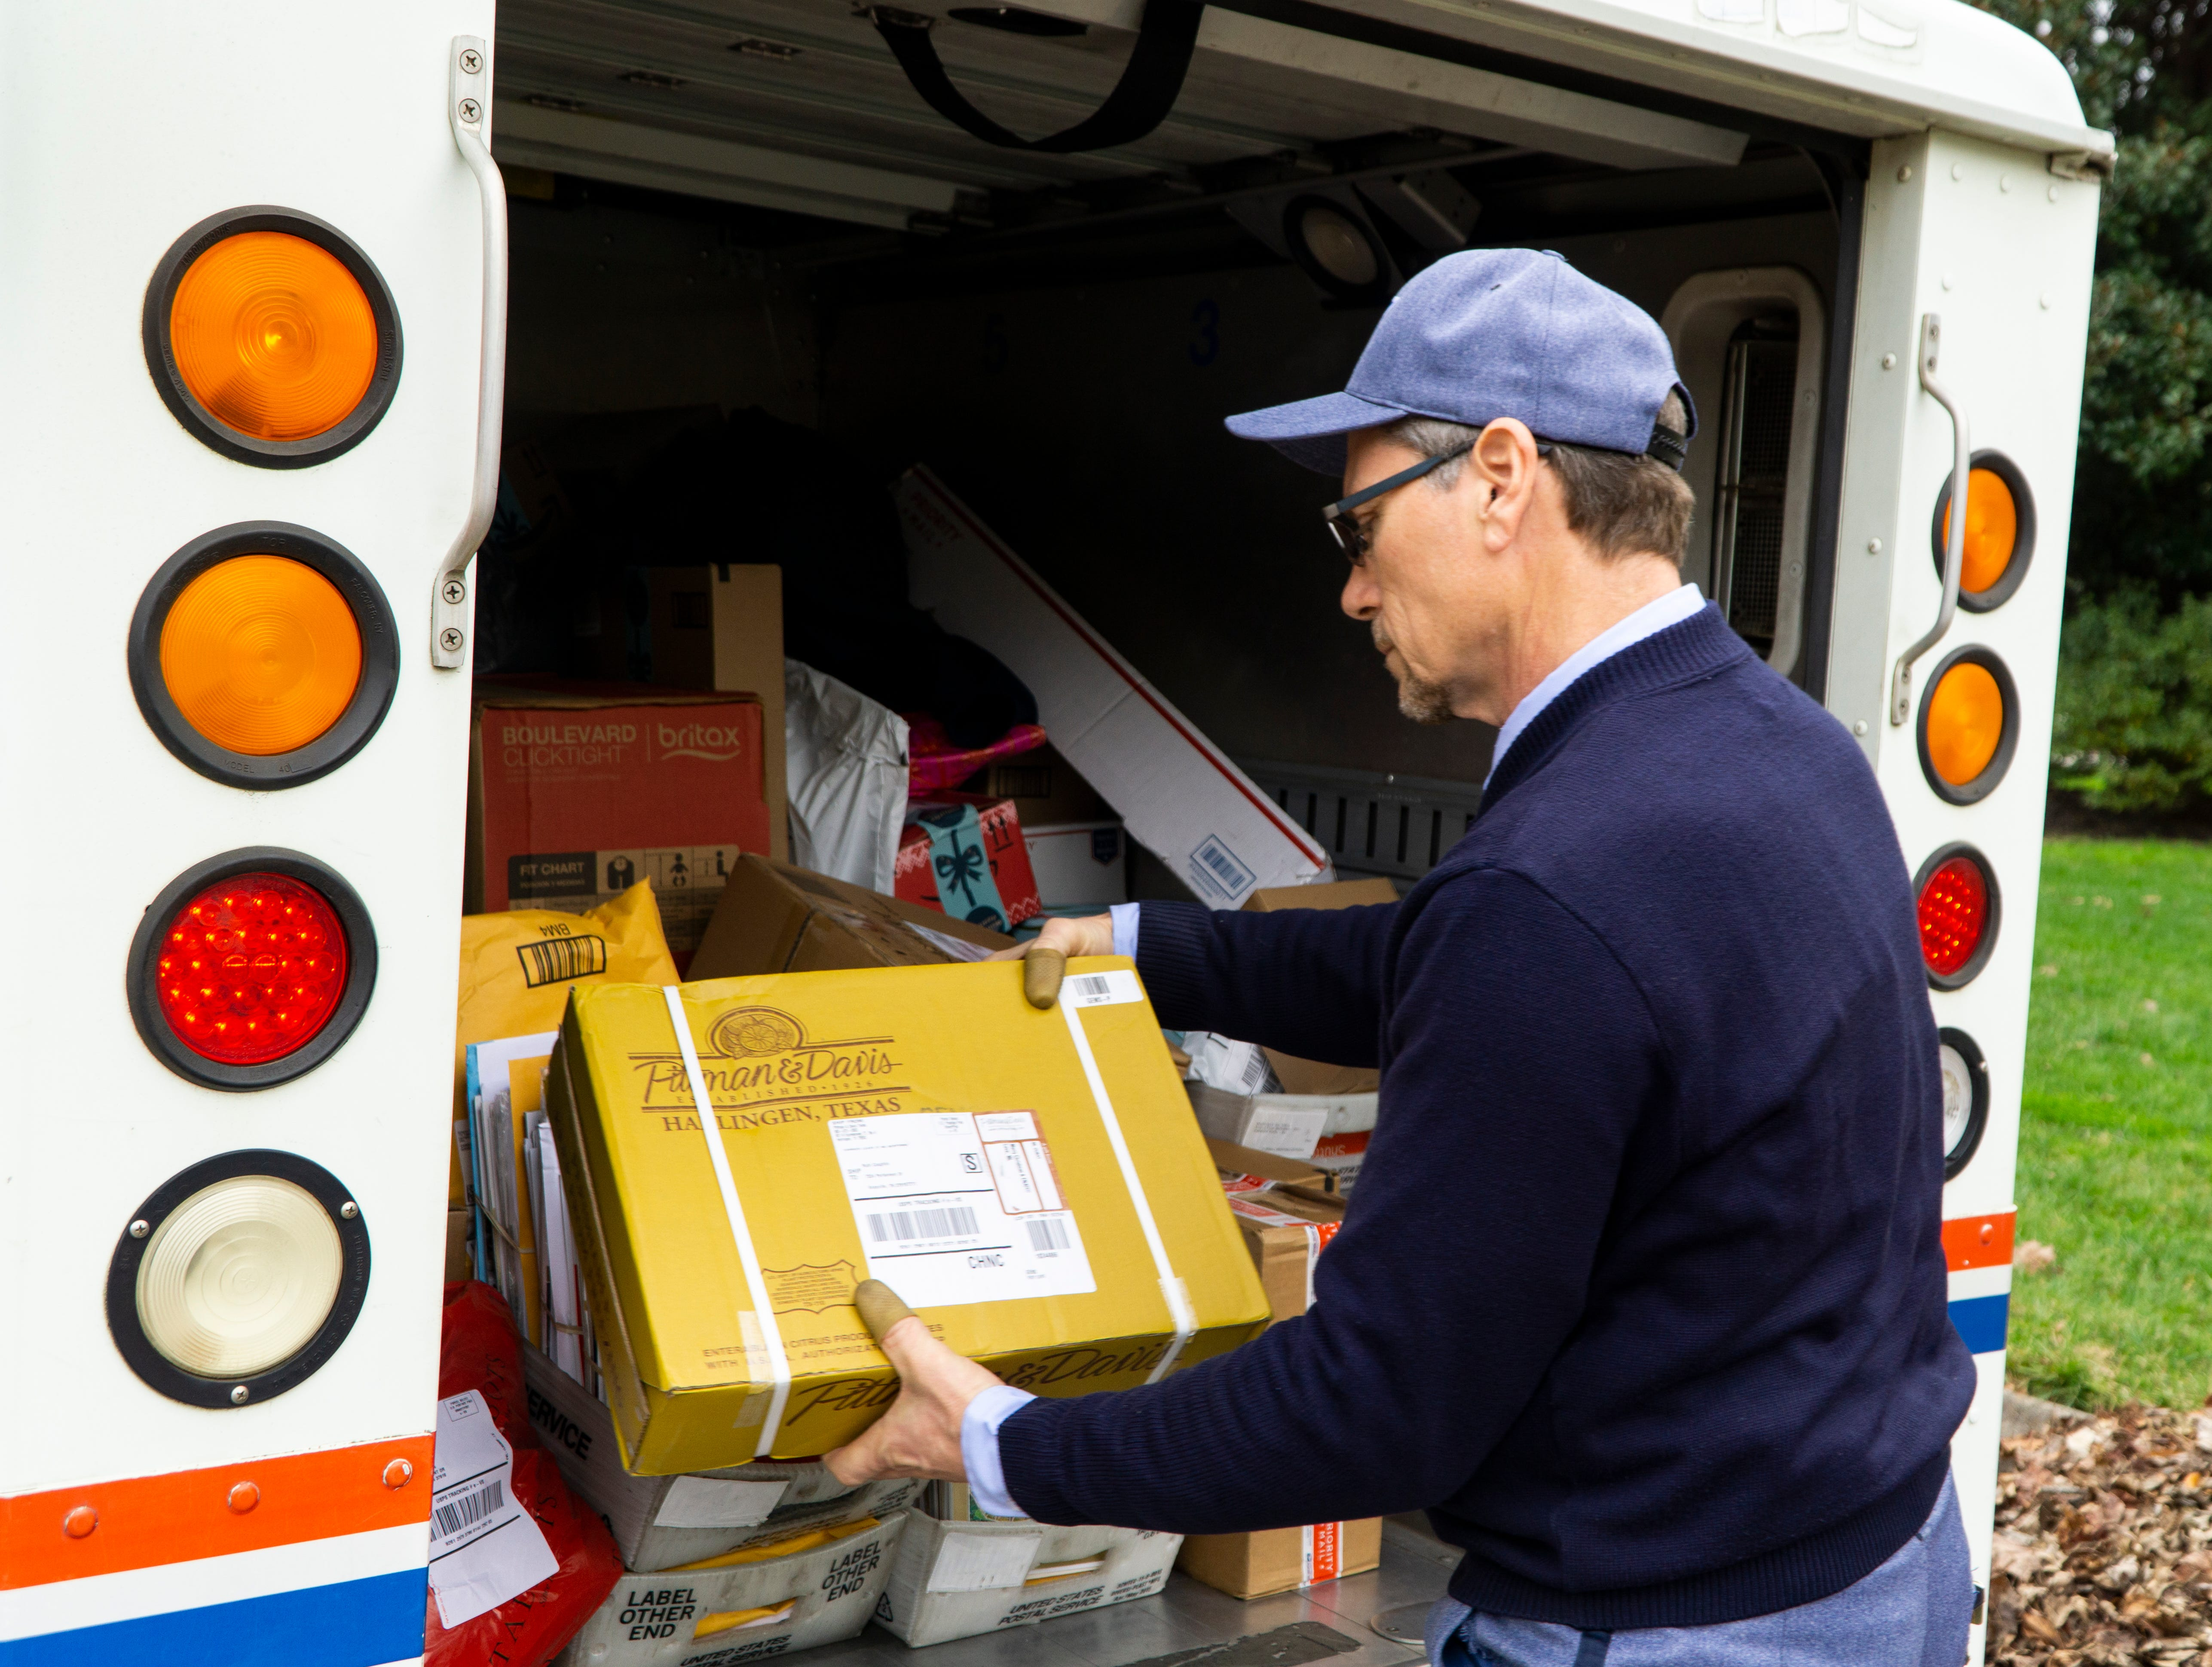 2018 shipping deadlines: What to know to get the gifts there by Christmas this year